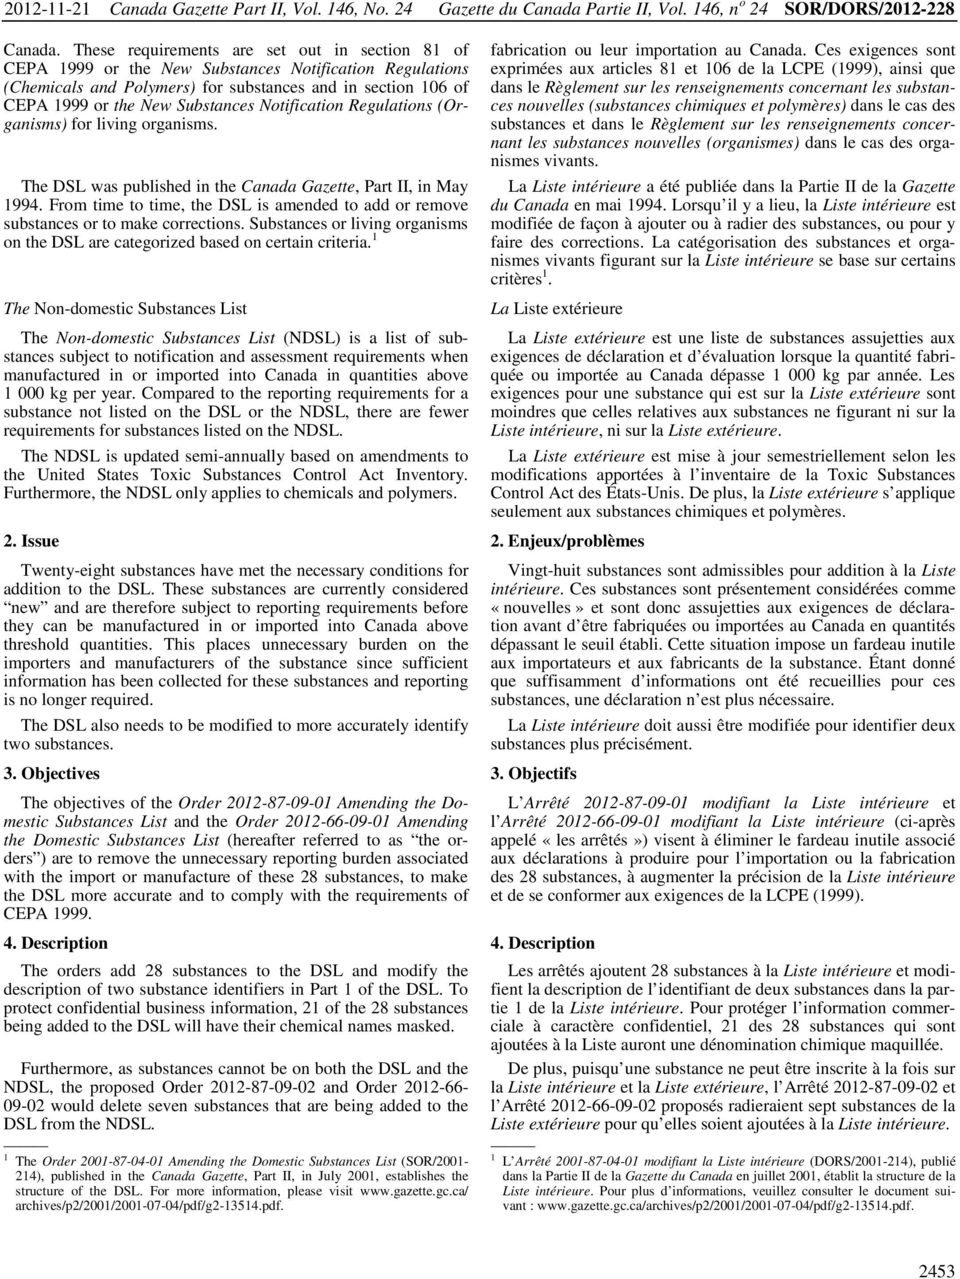 Notification Regulations (Organisms) for living organisms. The DSL was published in the Canada Gazette, Part II, in May 1994.